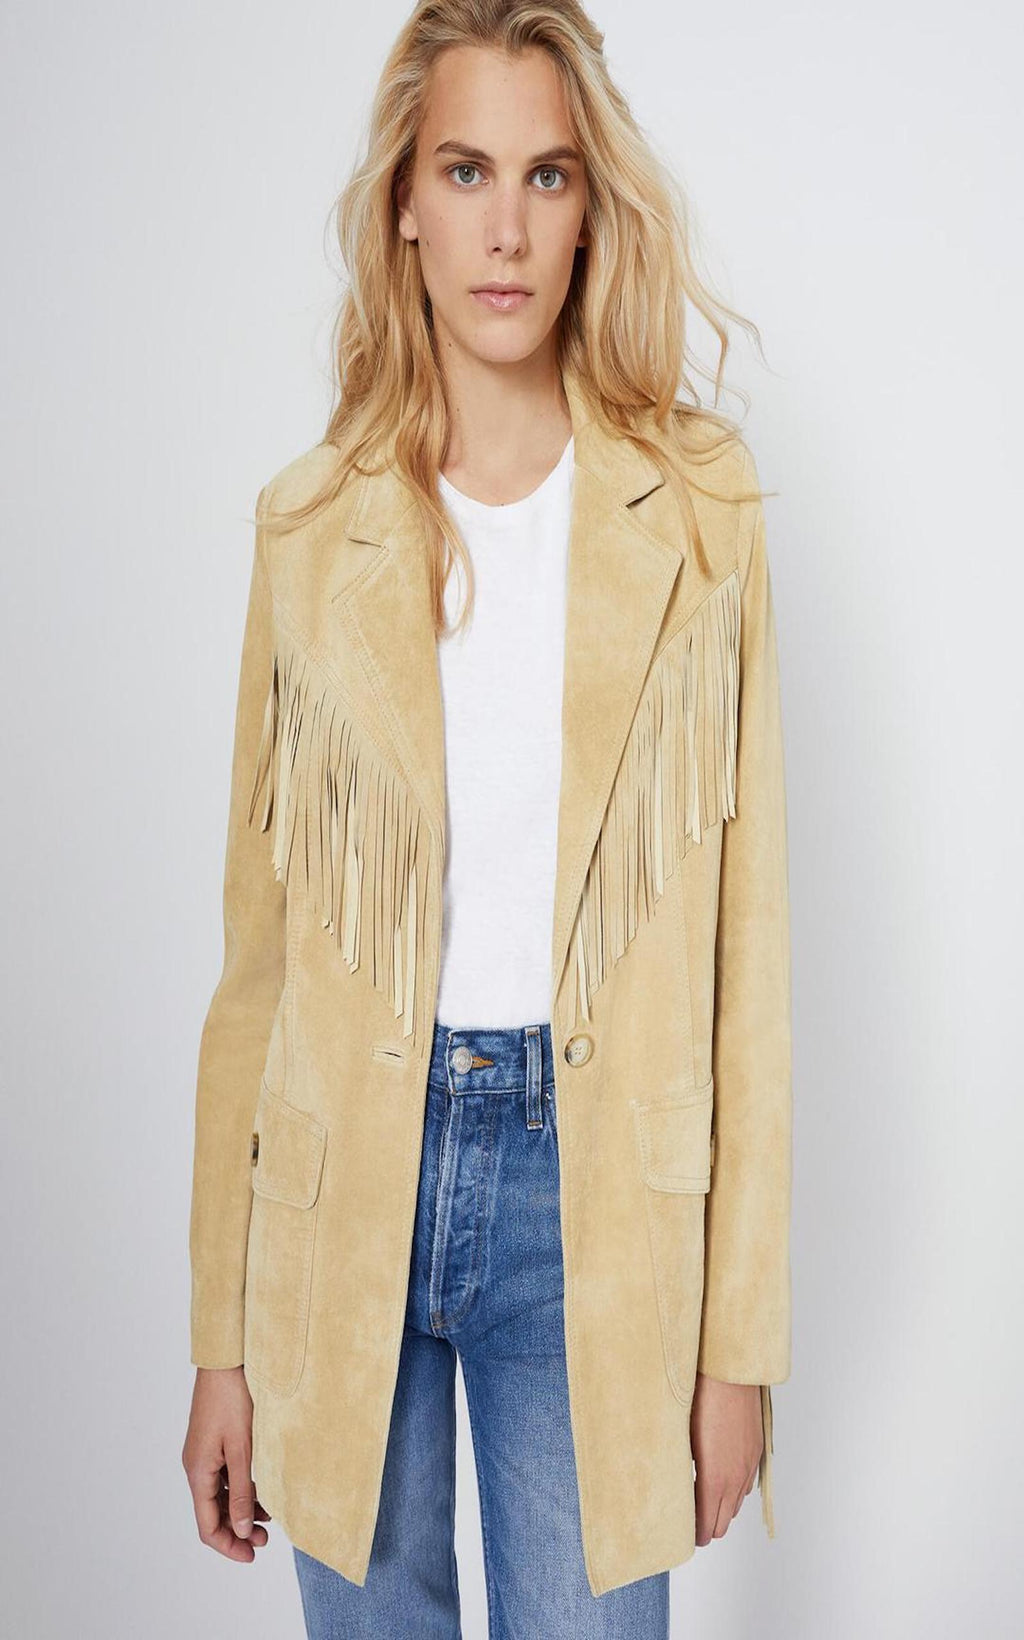 Suede Fringe Blazer - TownHouse Work/Shop